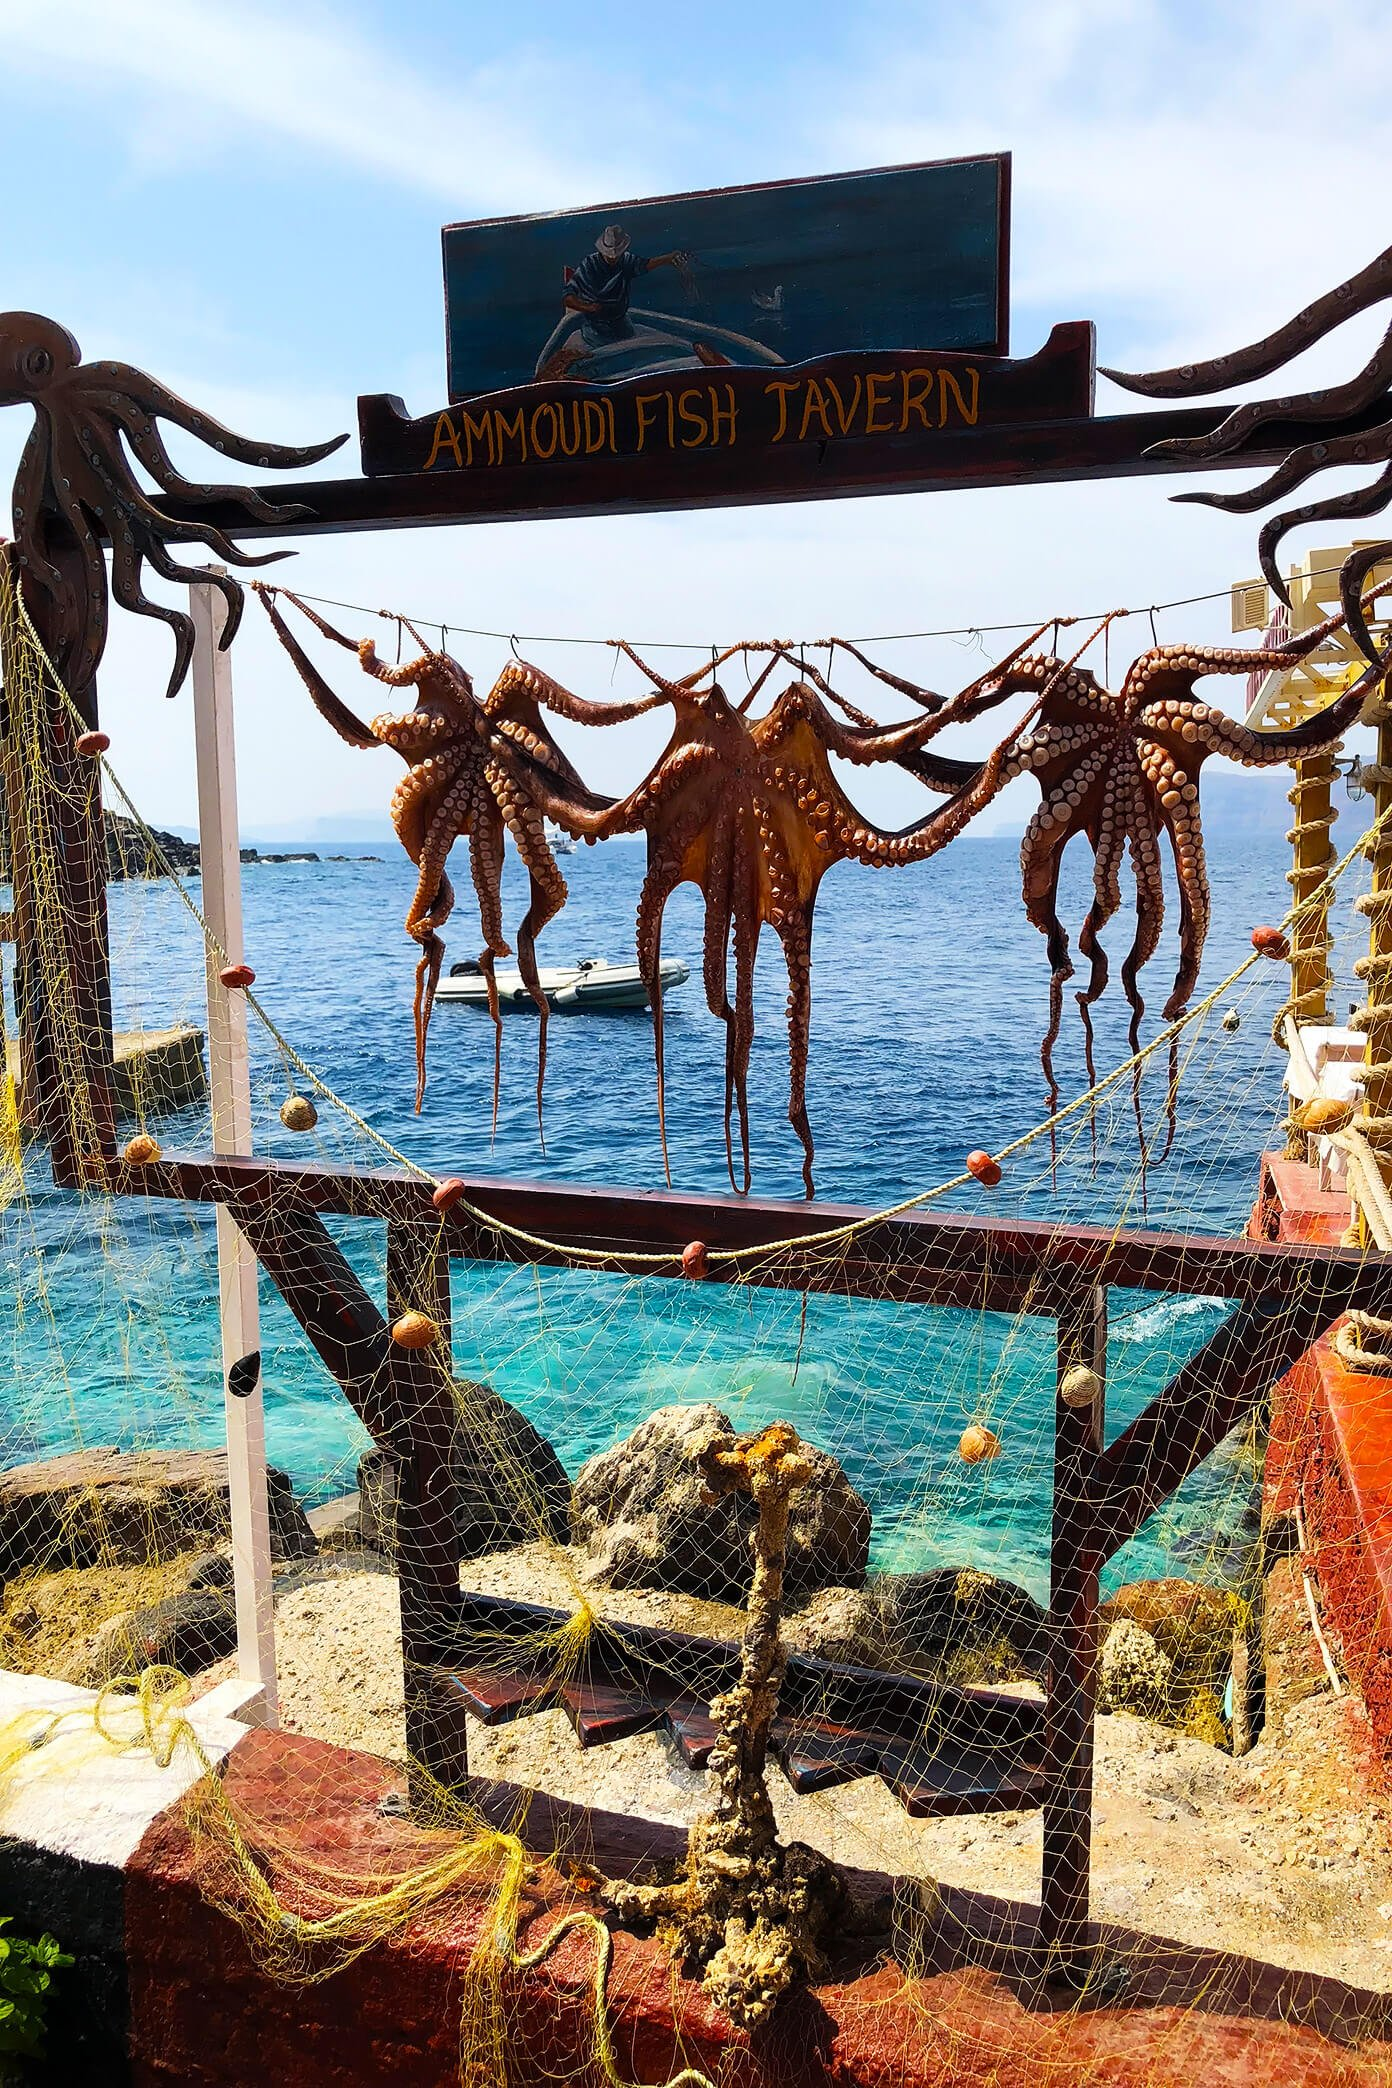 Ammoudi Fish Tavern in Santorini, Greece